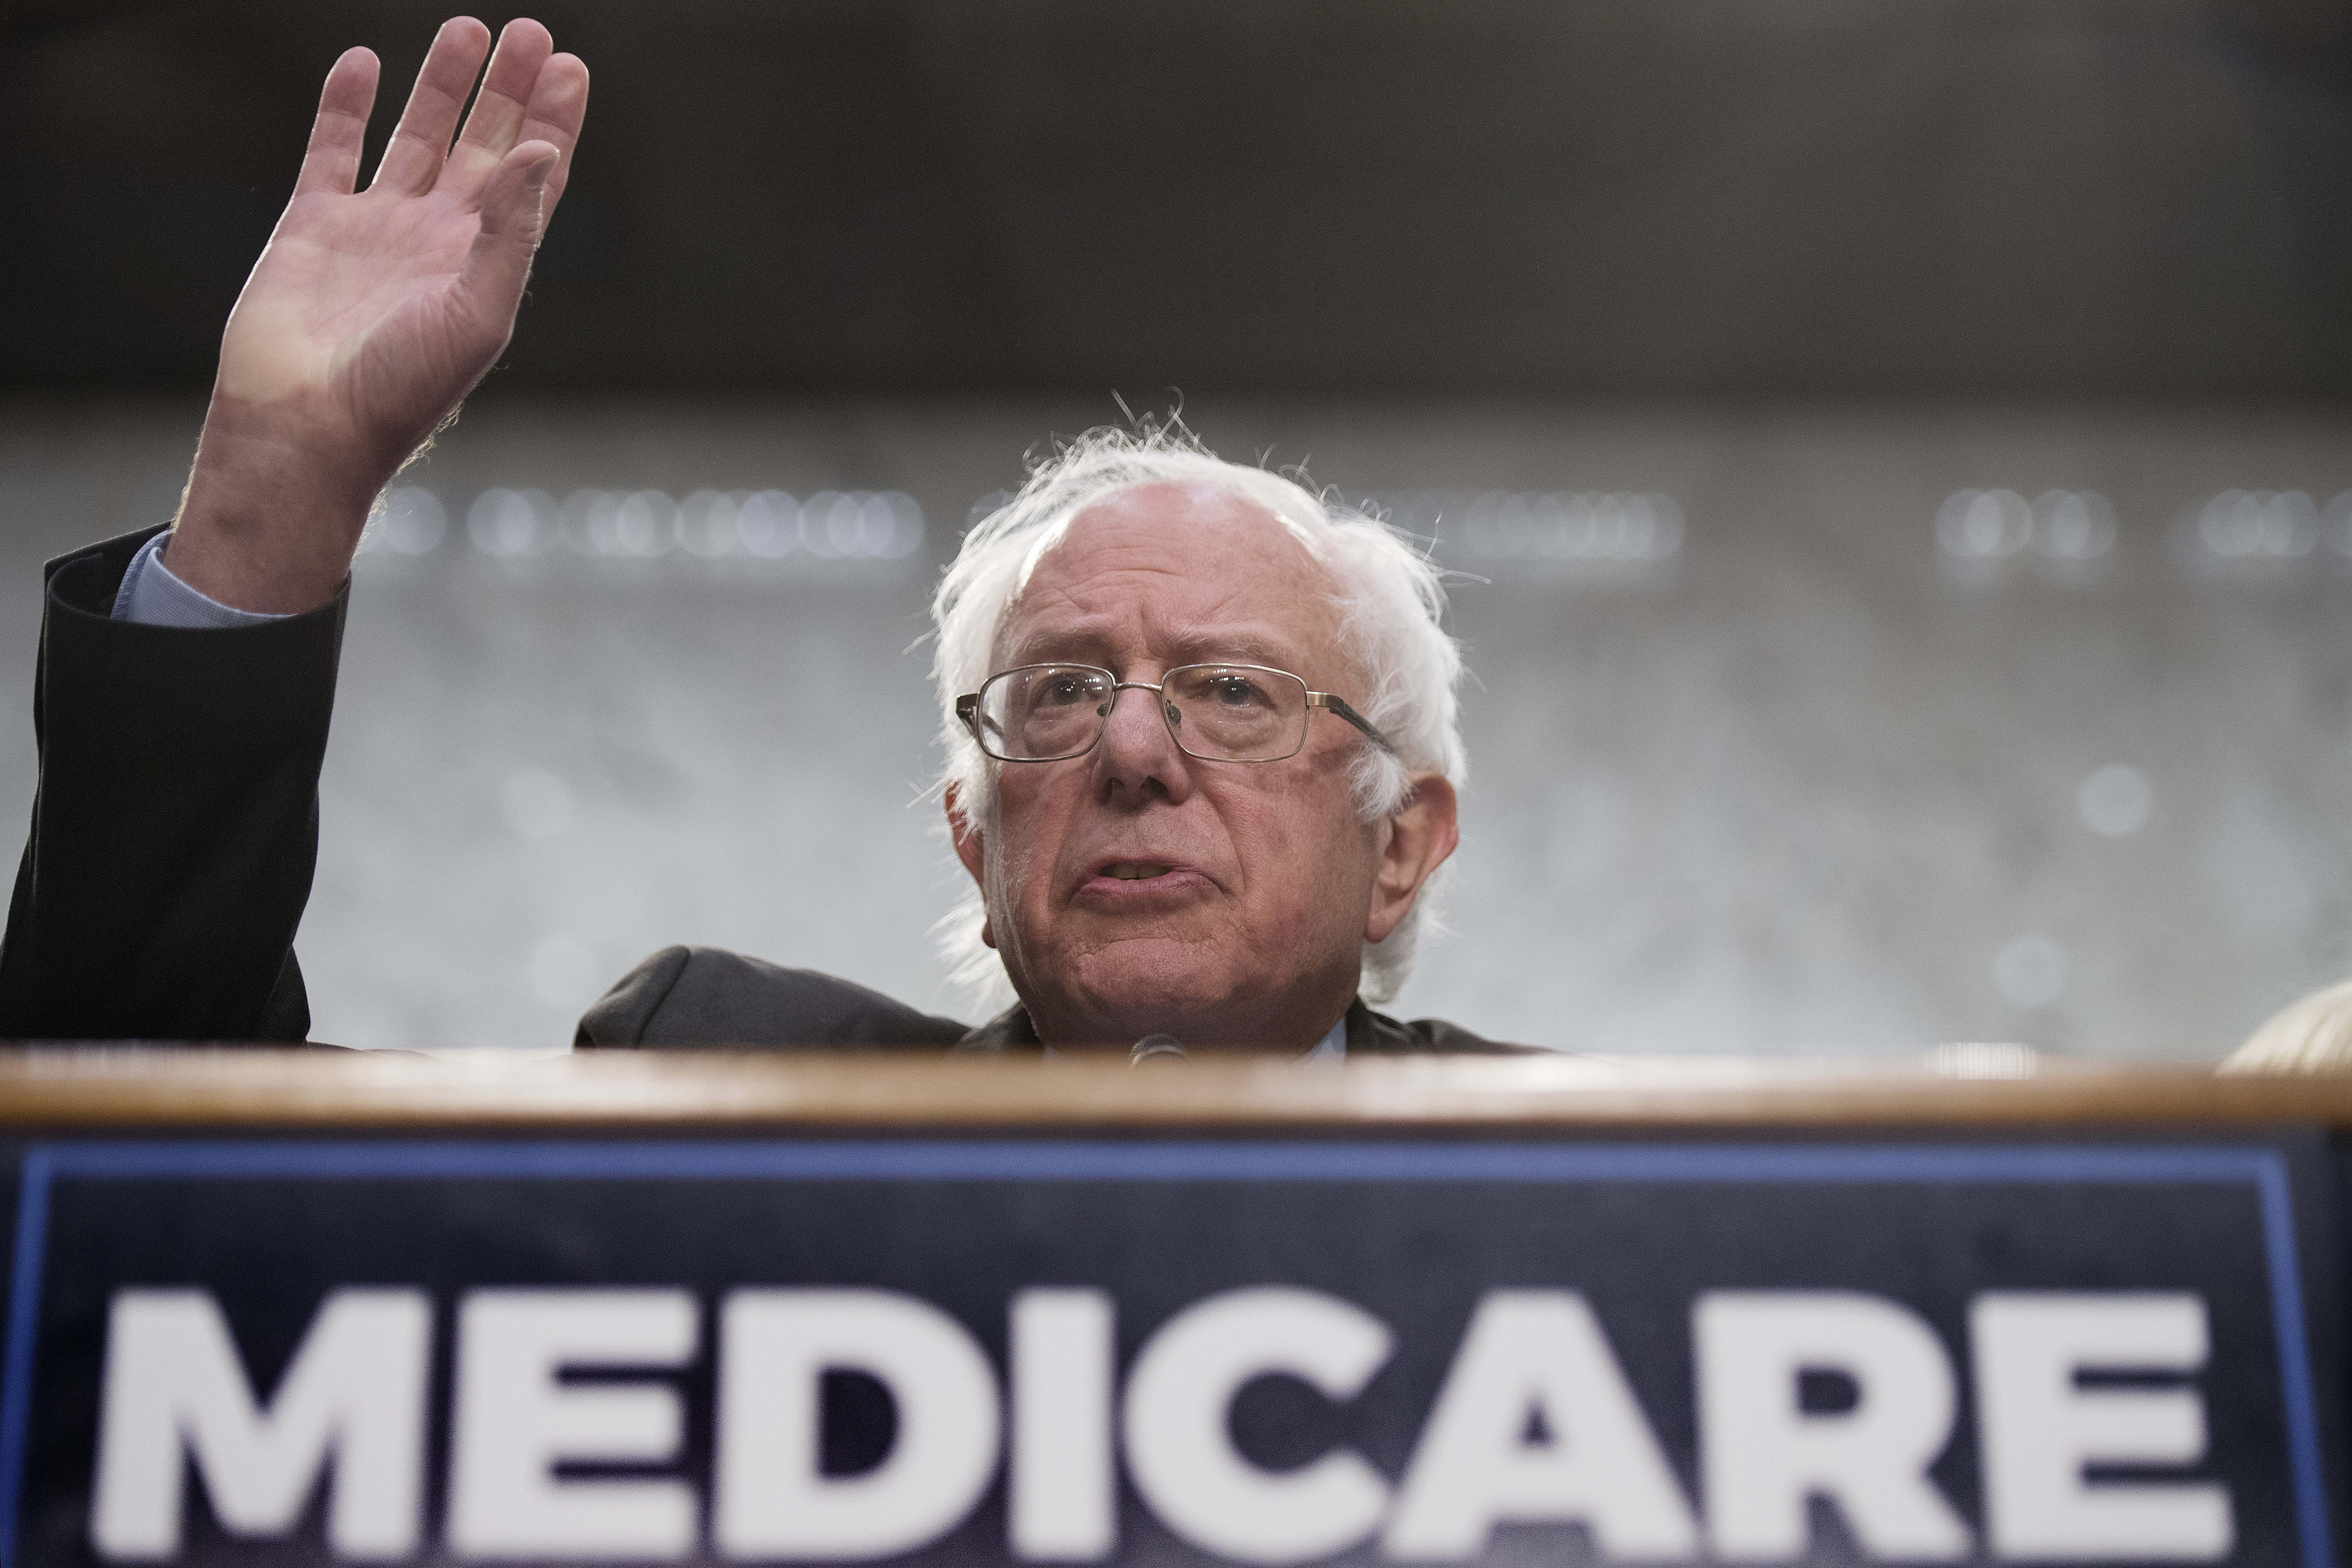 Bernie Sanders made Medicare-for-all mainstream. Now he's trying to reclaim it.